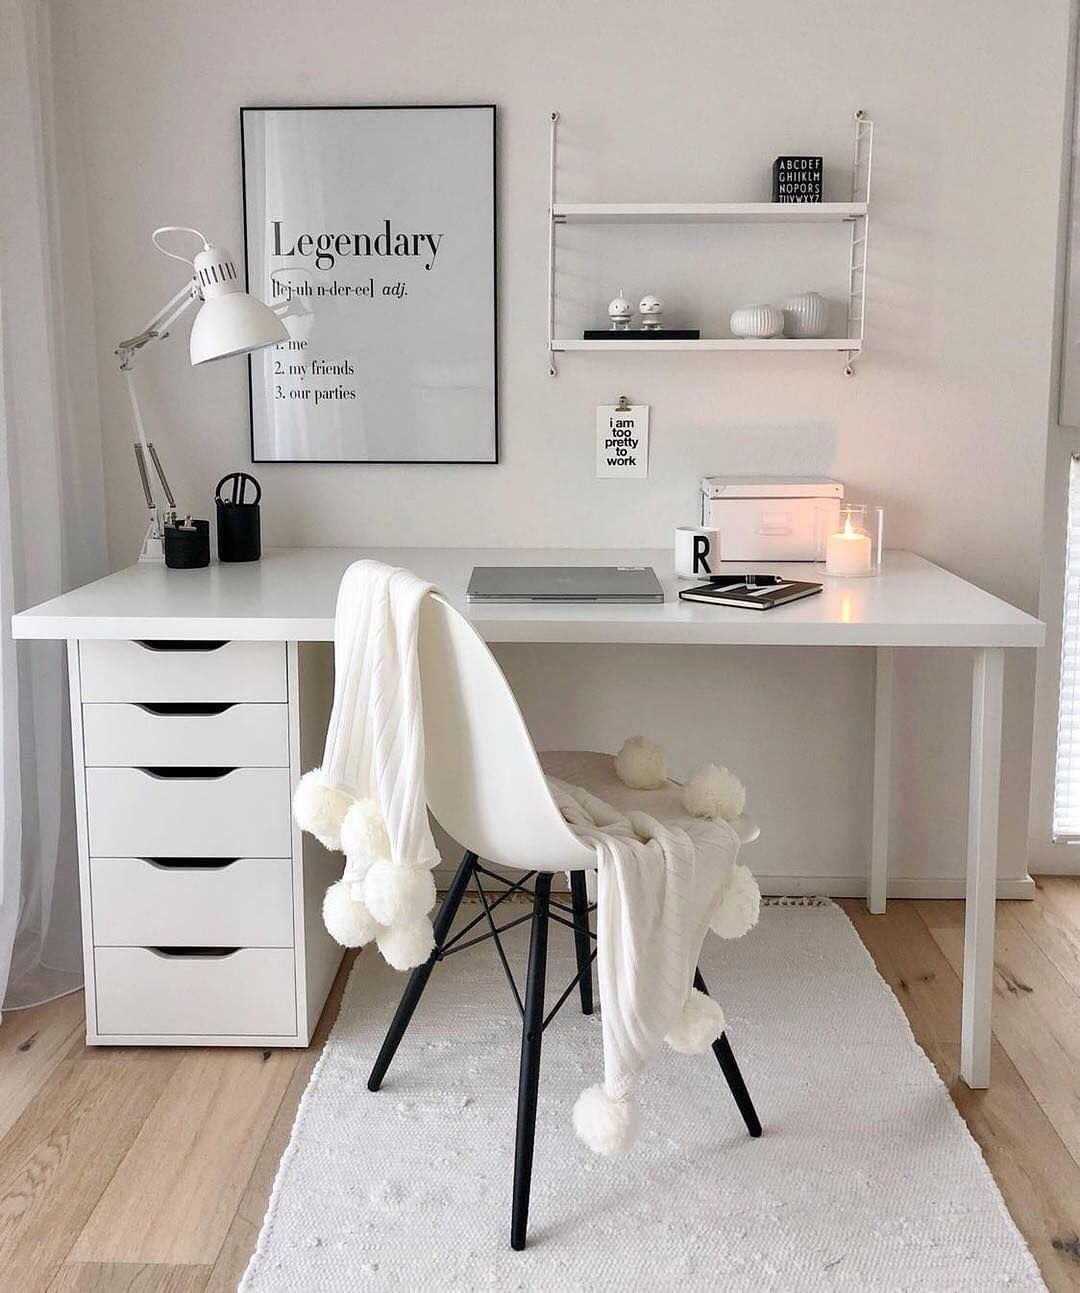 Simple And Clean Home Office Space House 1a Click The Image To